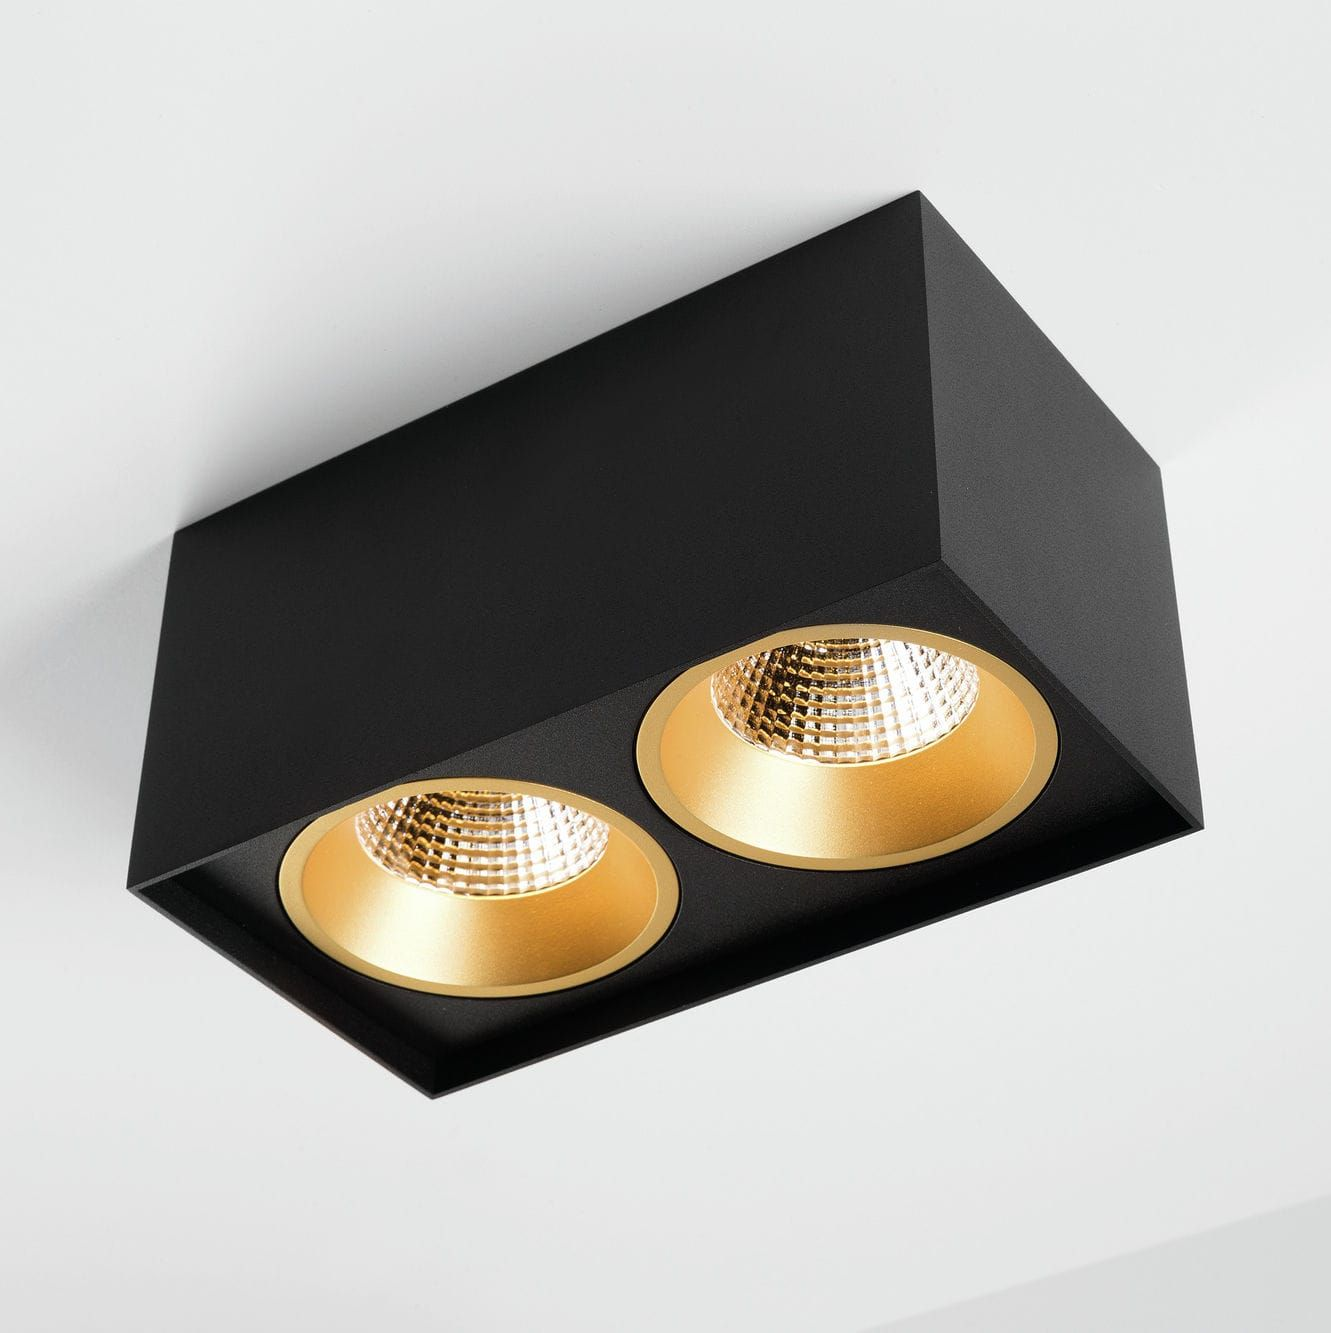 Surface Mounted Downlight Led Rectangular Dimmable Smart Box